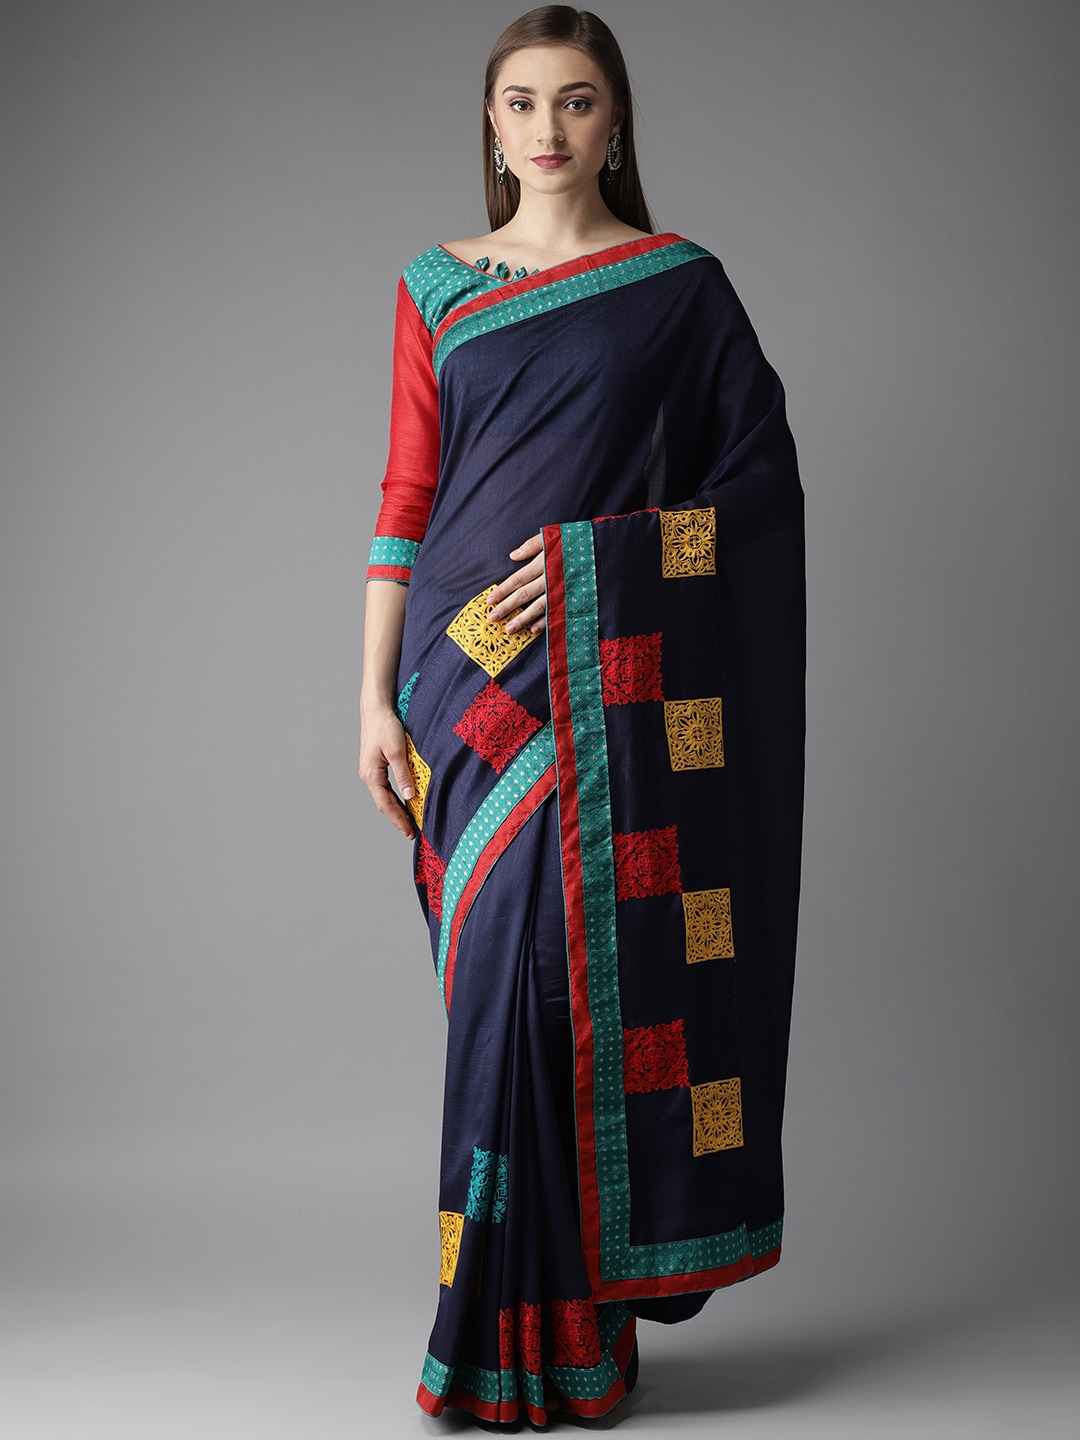 bc8a081e465432 Saree - Buy Sarees Online at Best Price in India